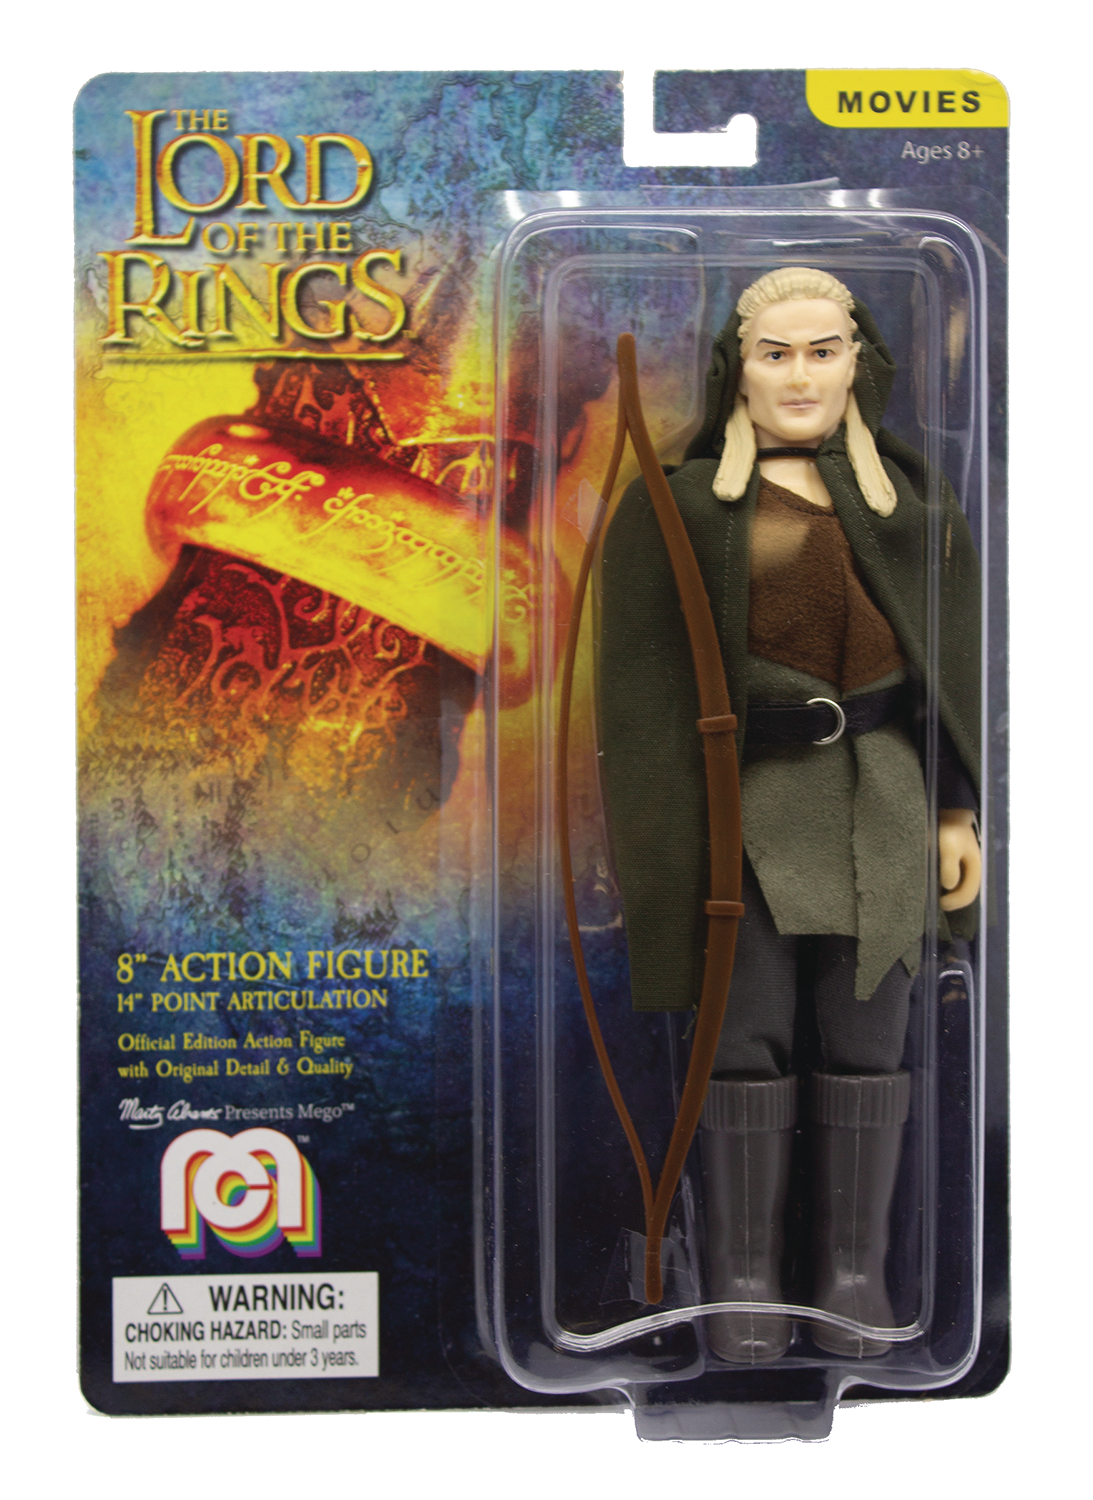 MEGO MOVIES WAVE 7 LORD OF THE RINGS LEGOLAS 8IN AF